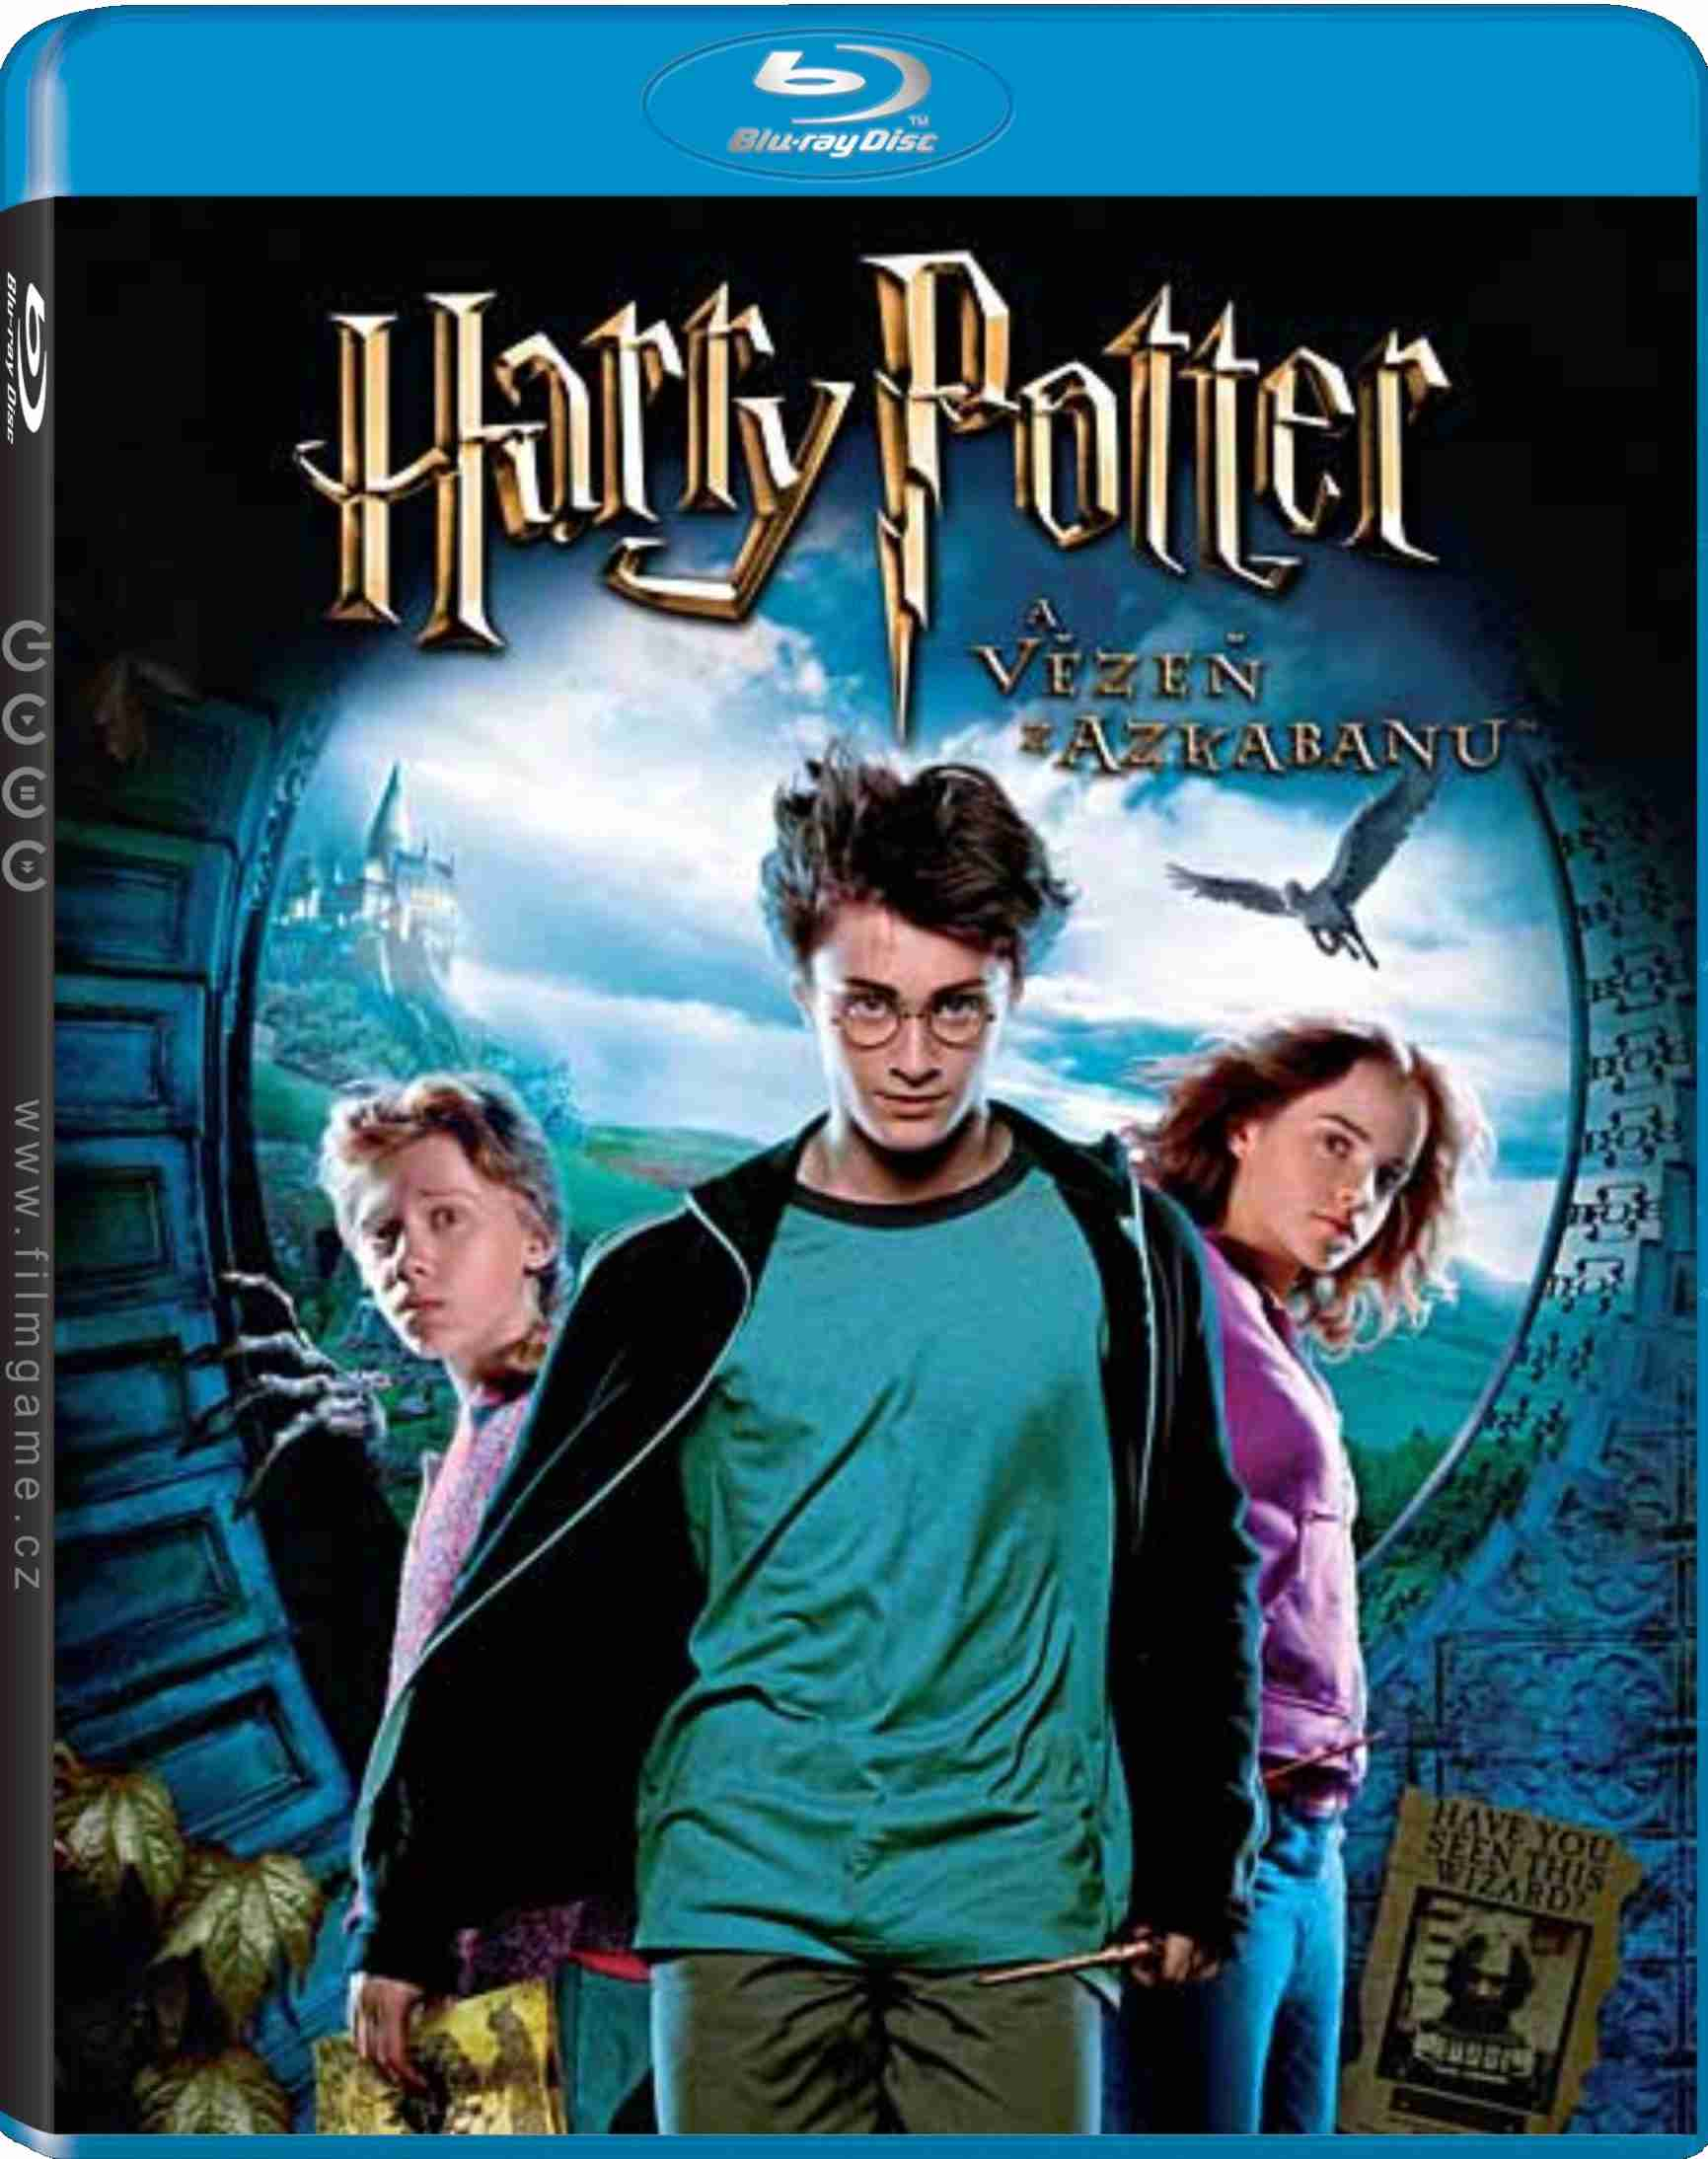 HARRY POTTER A VĚZEŇ Z AZKABANU - Blu-ray